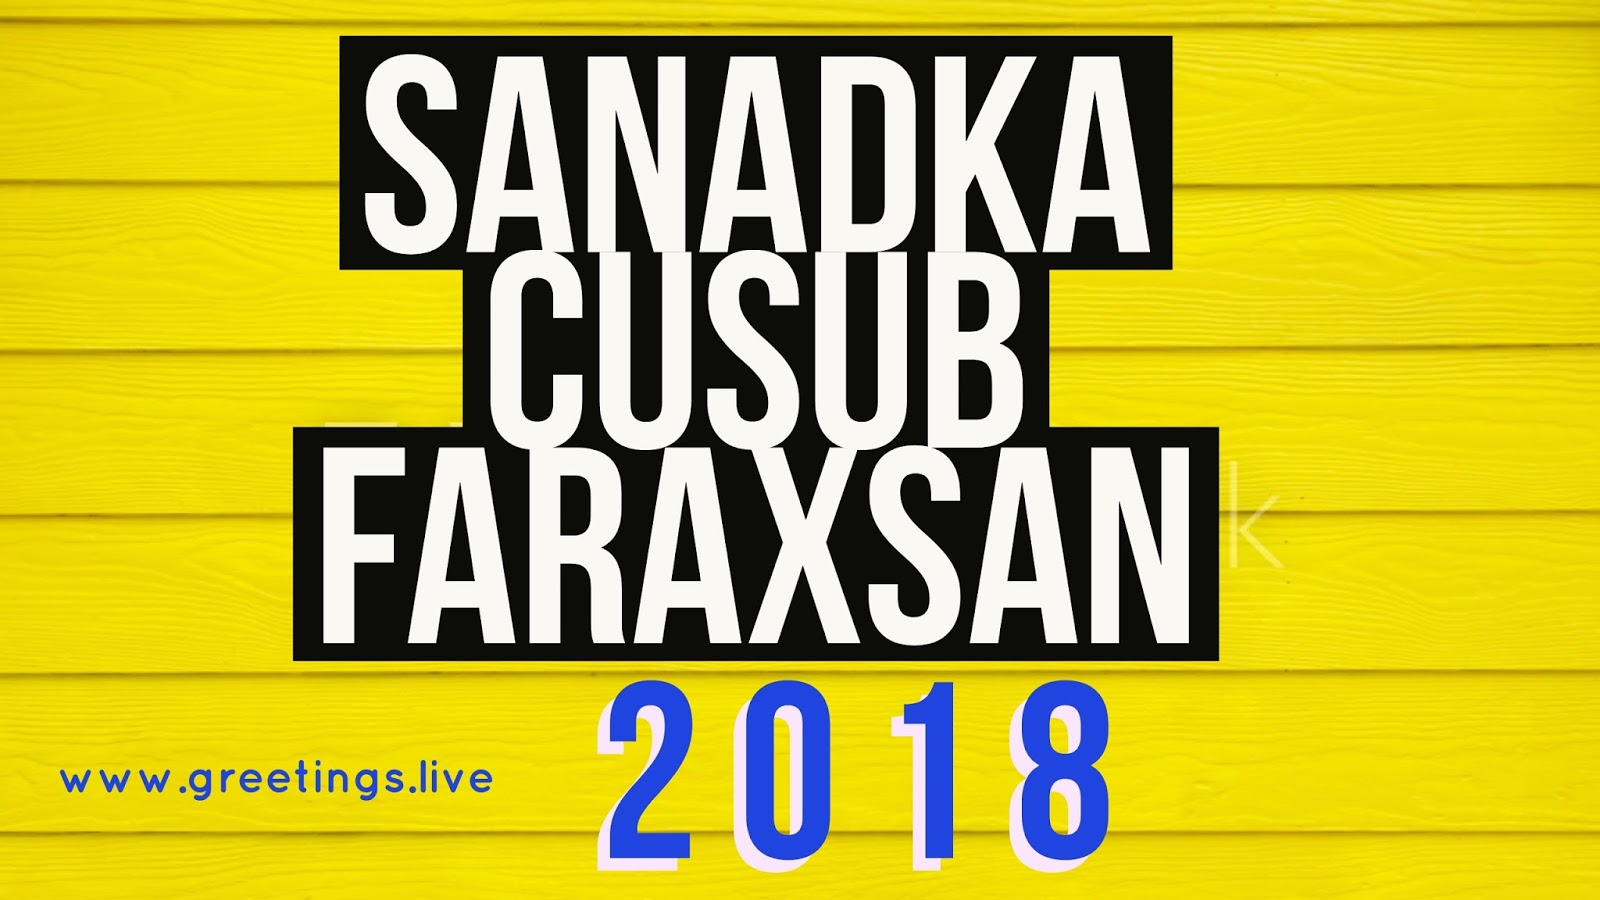 2018 new year wishes greetings happy new year in somali language yellow colour wooden board bg fonts in black and white blue colour combination somali language happy m4hsunfo